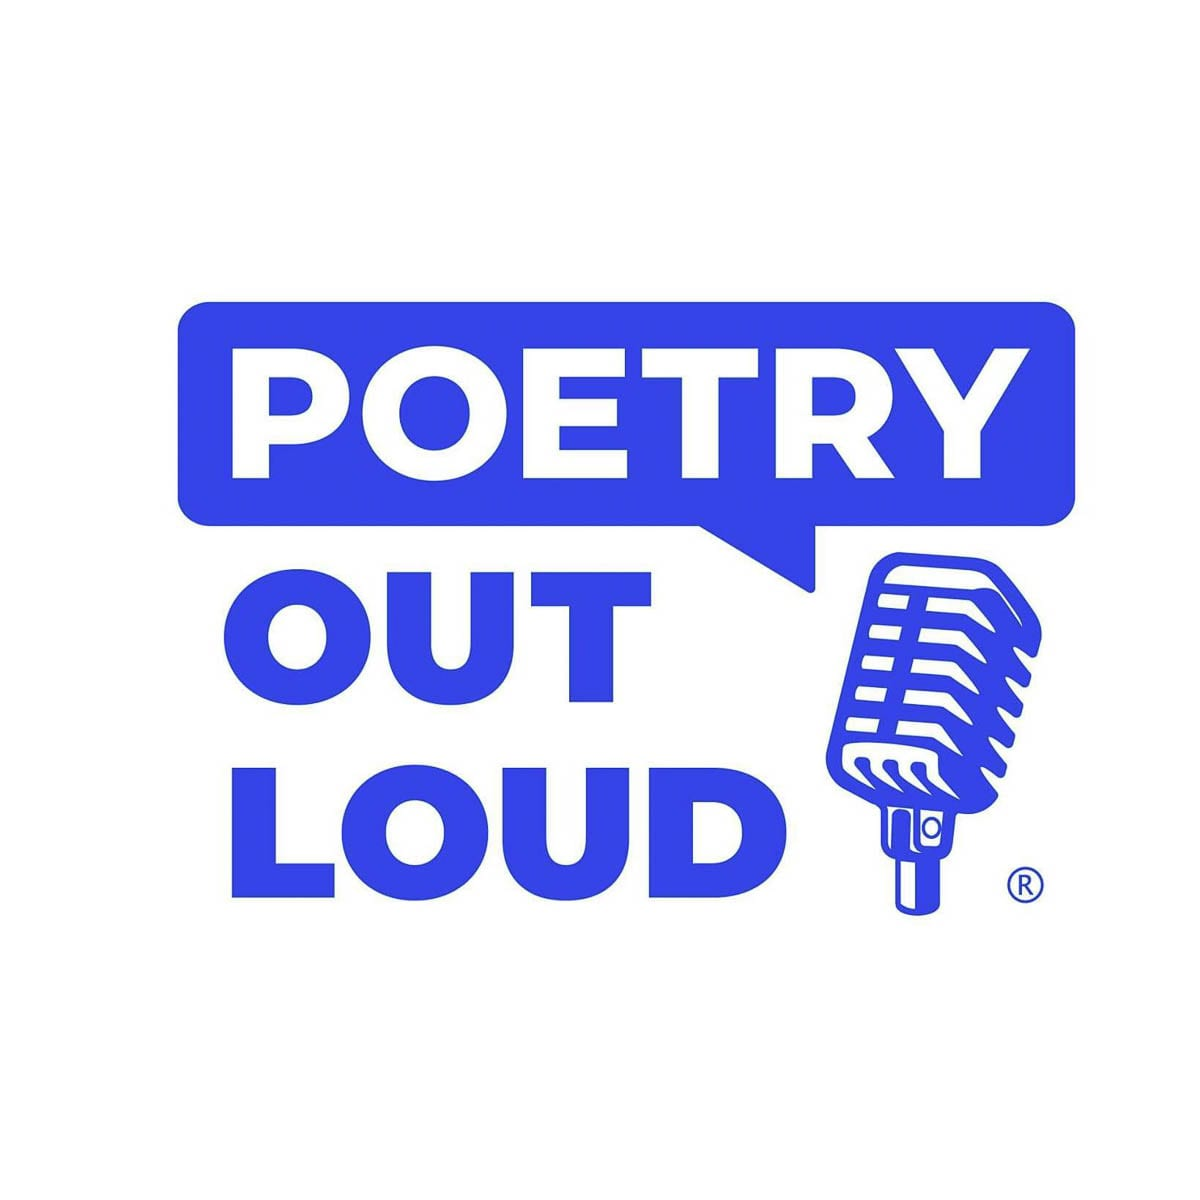 The Poetry Out Loud state competition will feature a student finalist from both Ridgefield and Battle Ground schools, with a chance to compete in nationals.